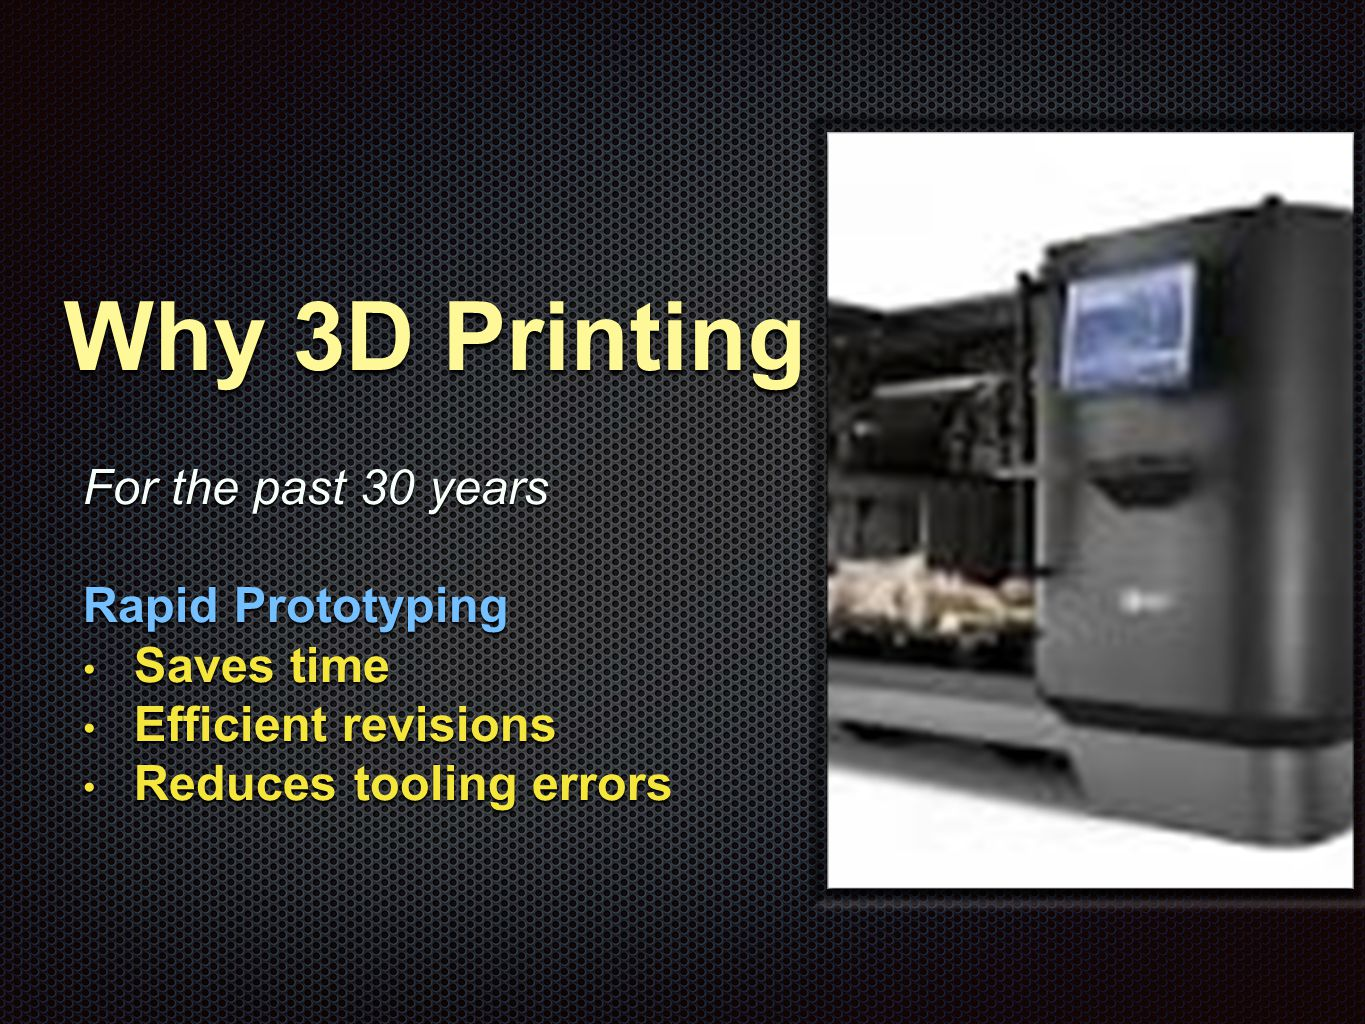 Why 3D Printing For the past 5 years: Rapid Prototyping Specialized, Short Run Production